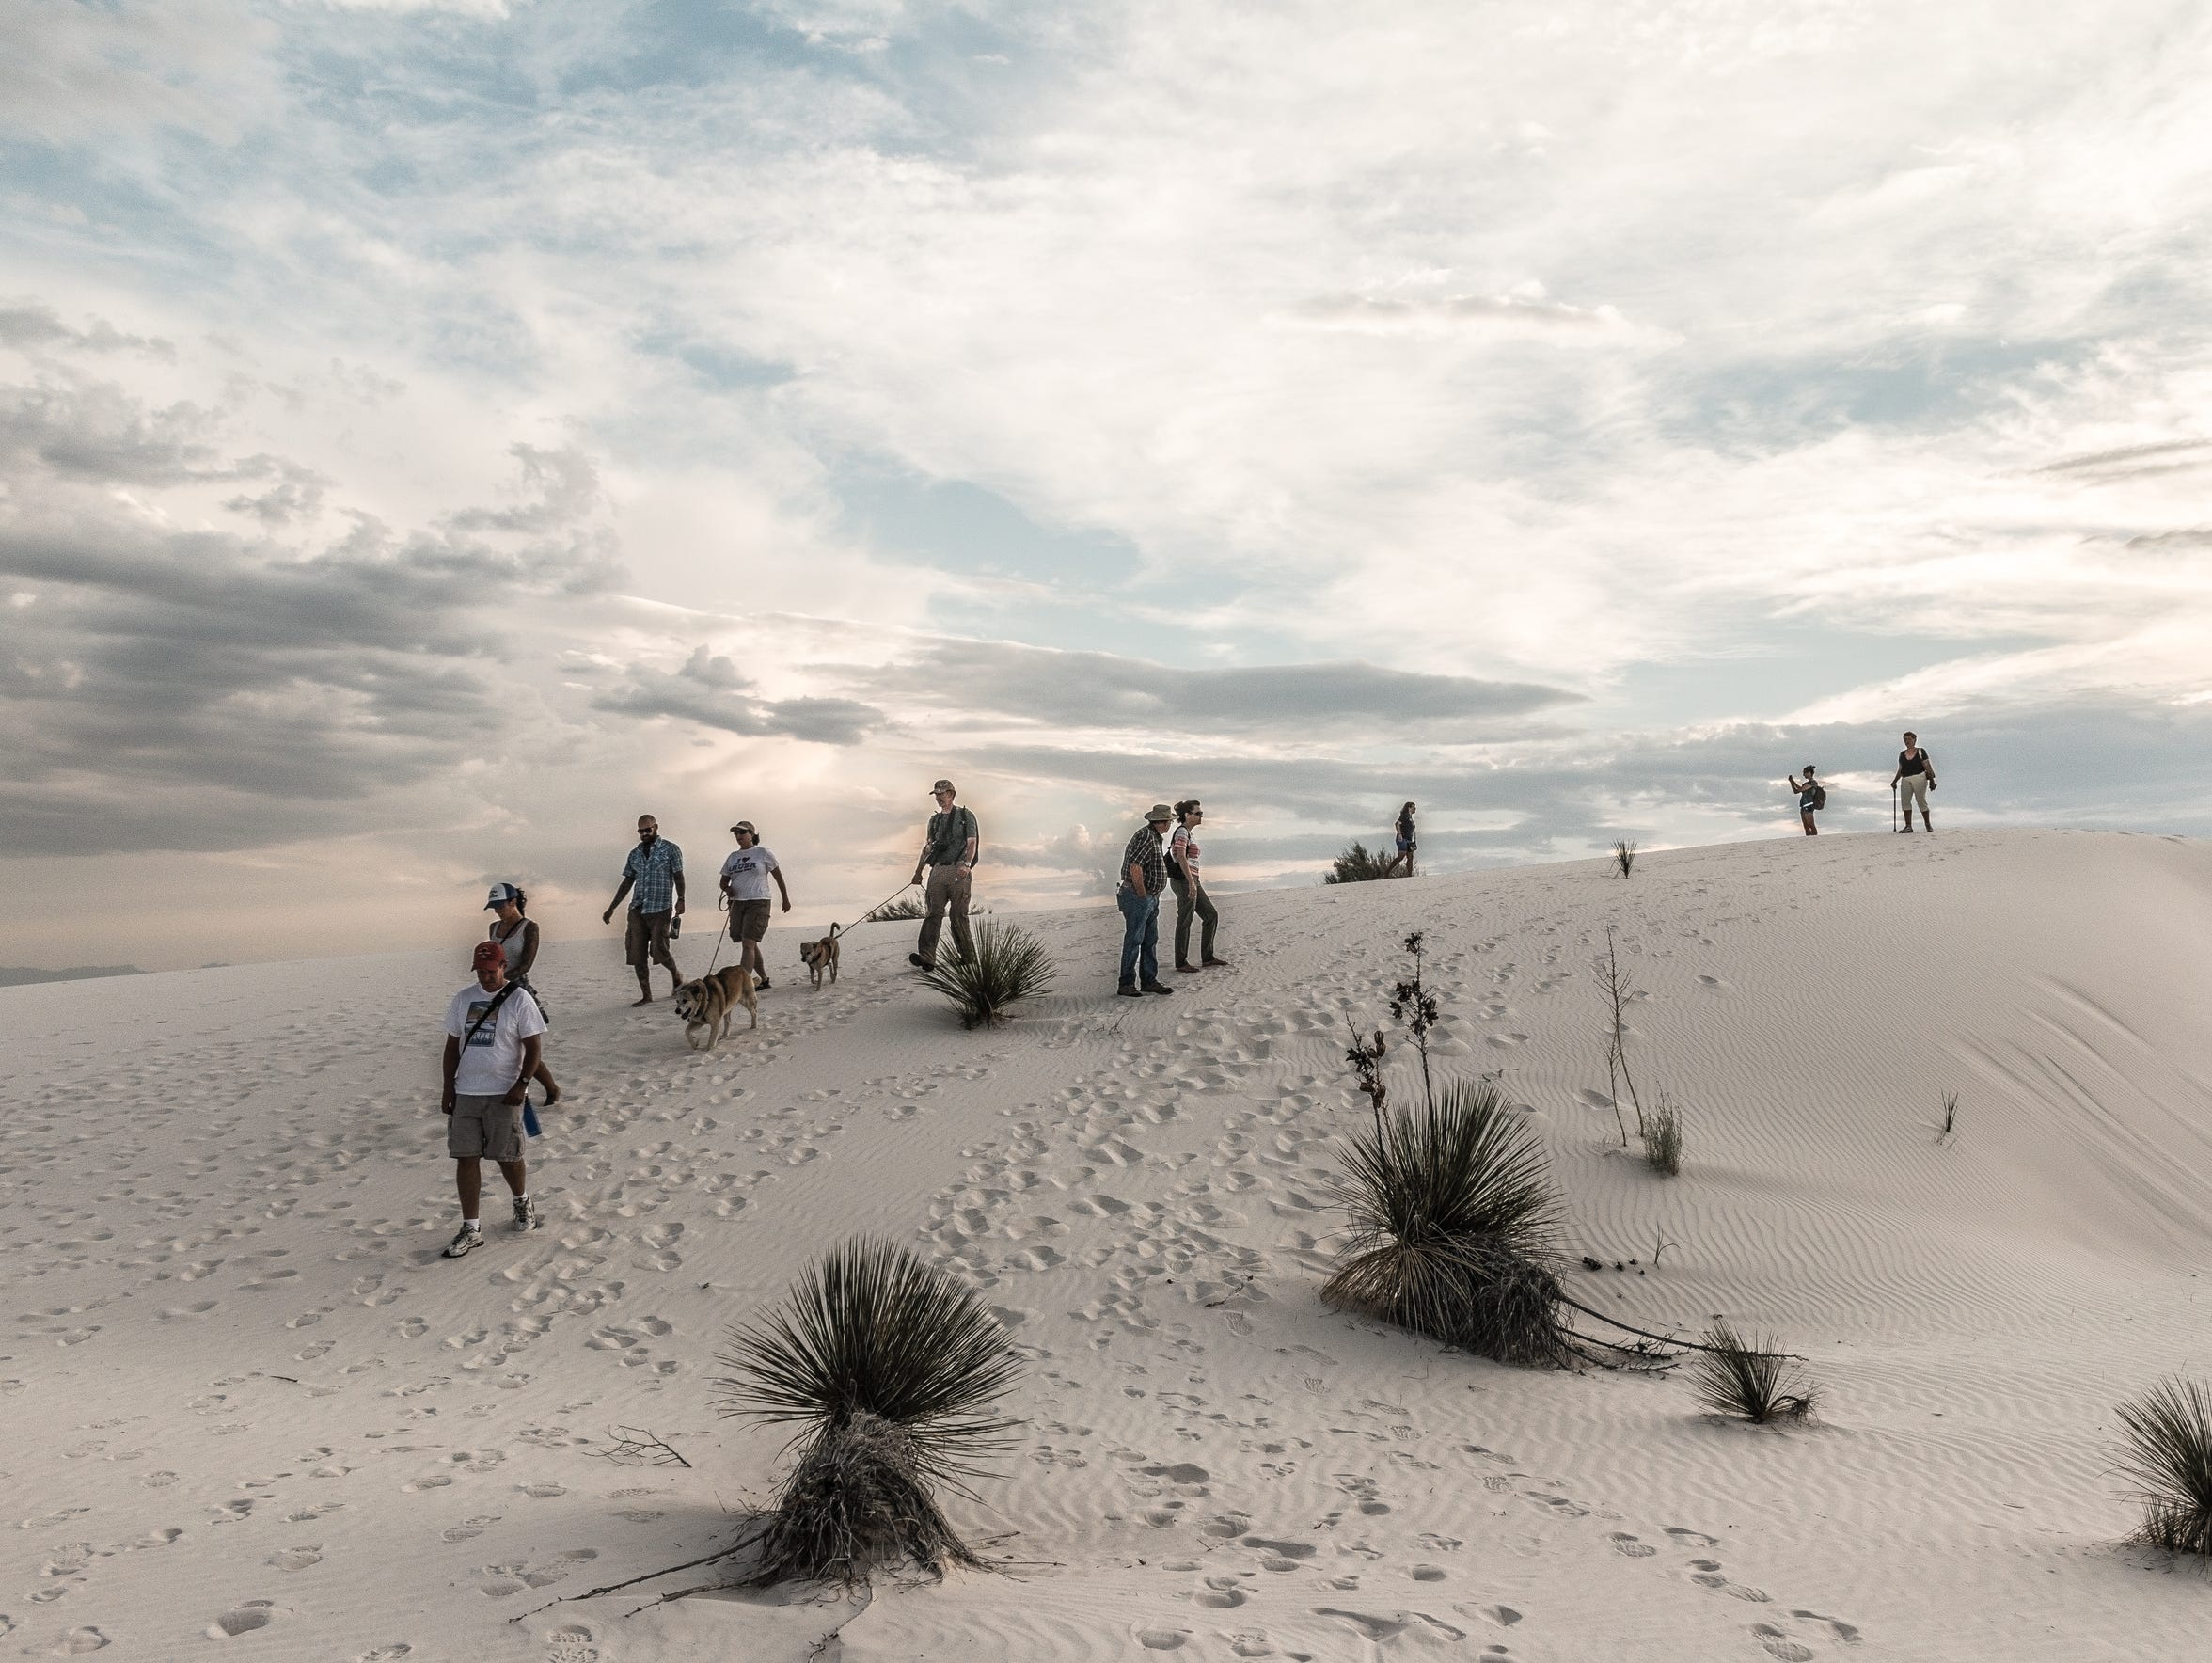 In 2016, White Sands saw record attendance with more